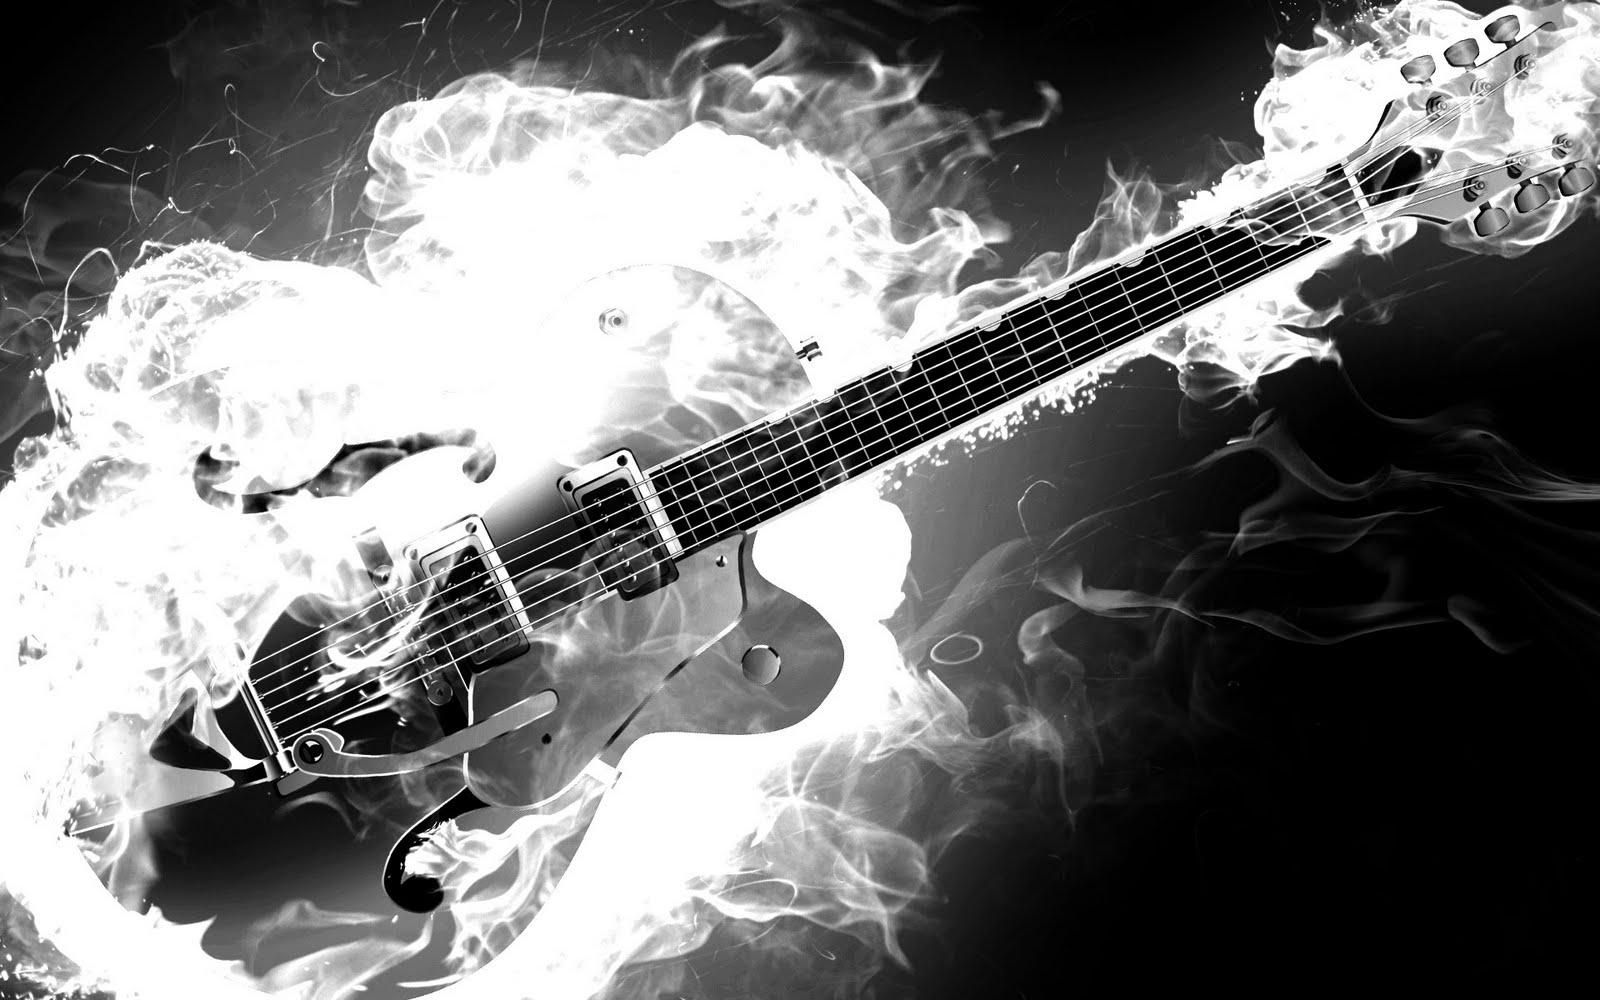 wallpapers for cool guitar backgrounds hd 1080p | download